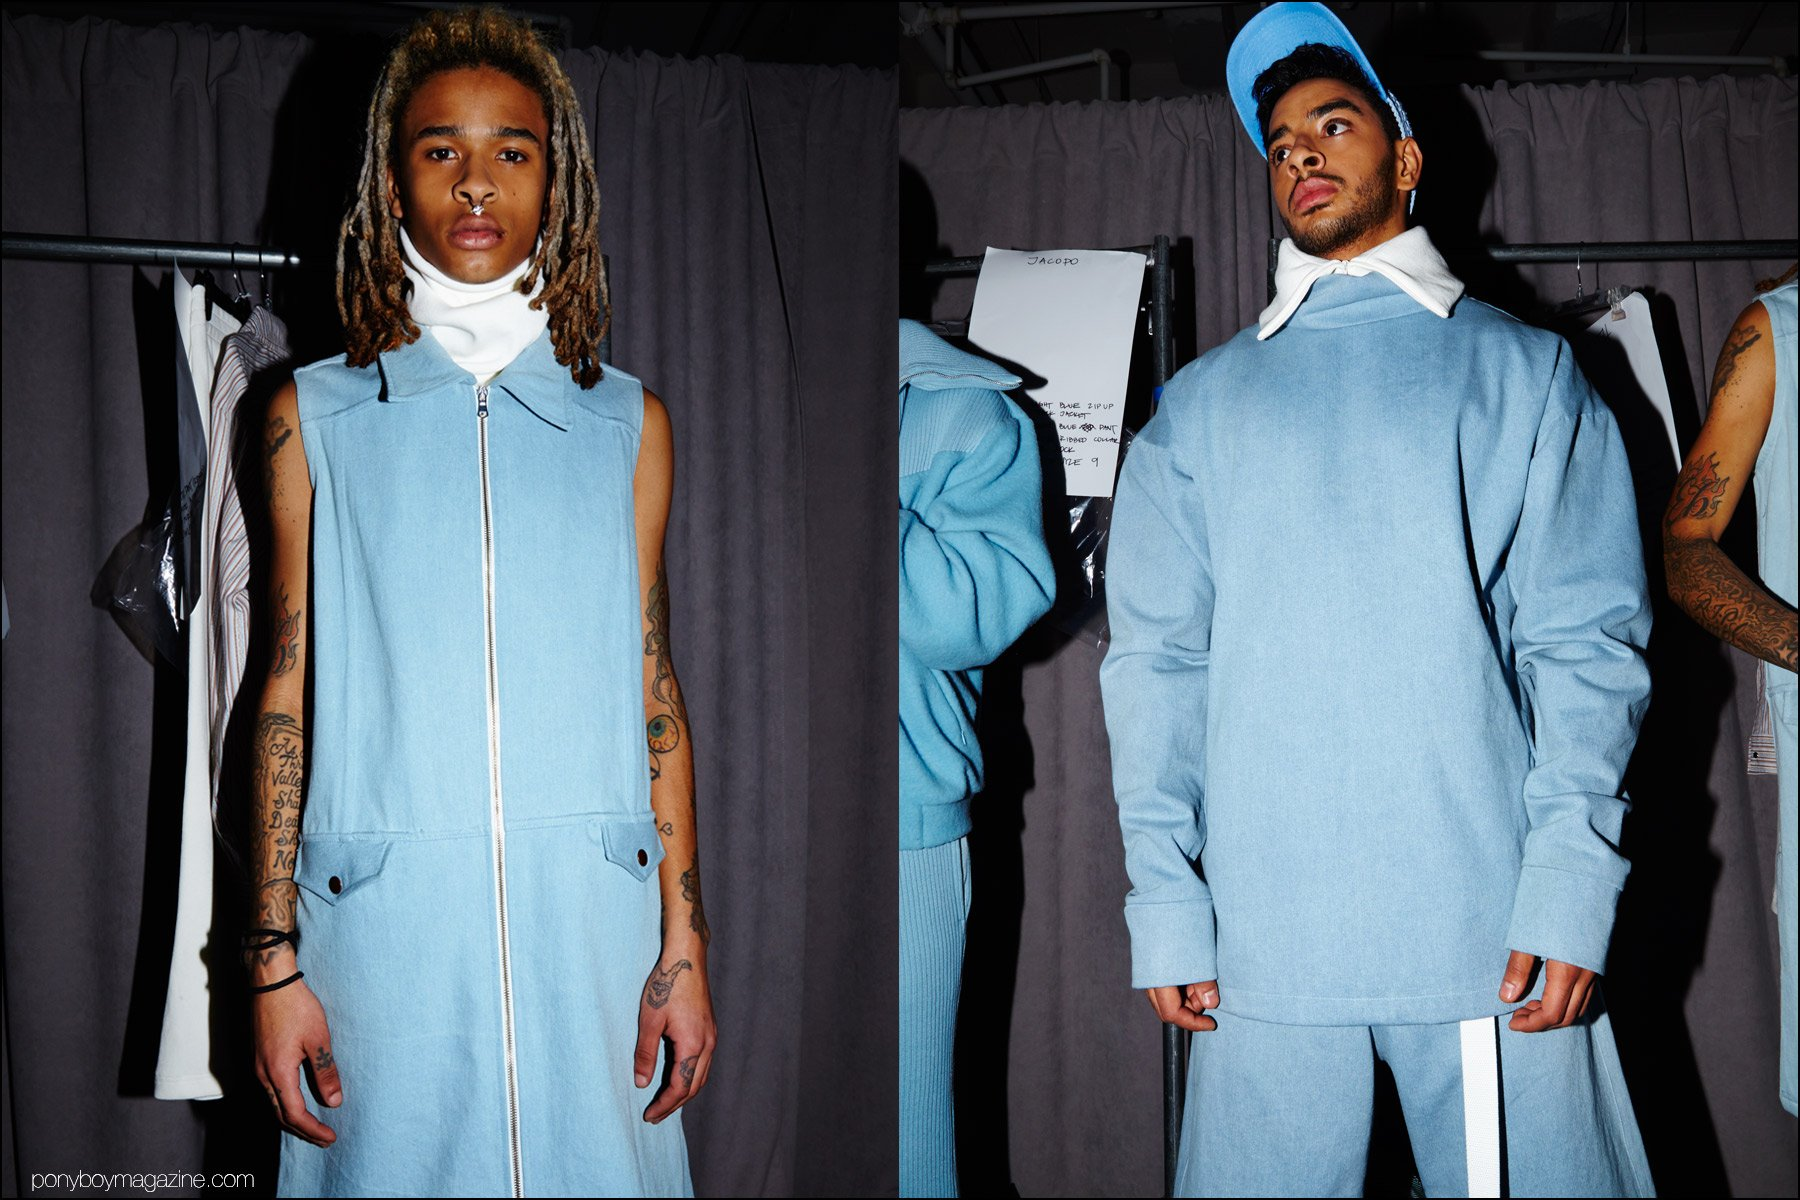 Baby-blue menswear designs, photographed backstage at Gypsy Sport F/W16. Photography by Alexander Thompson for Ponyboy magazine NY.